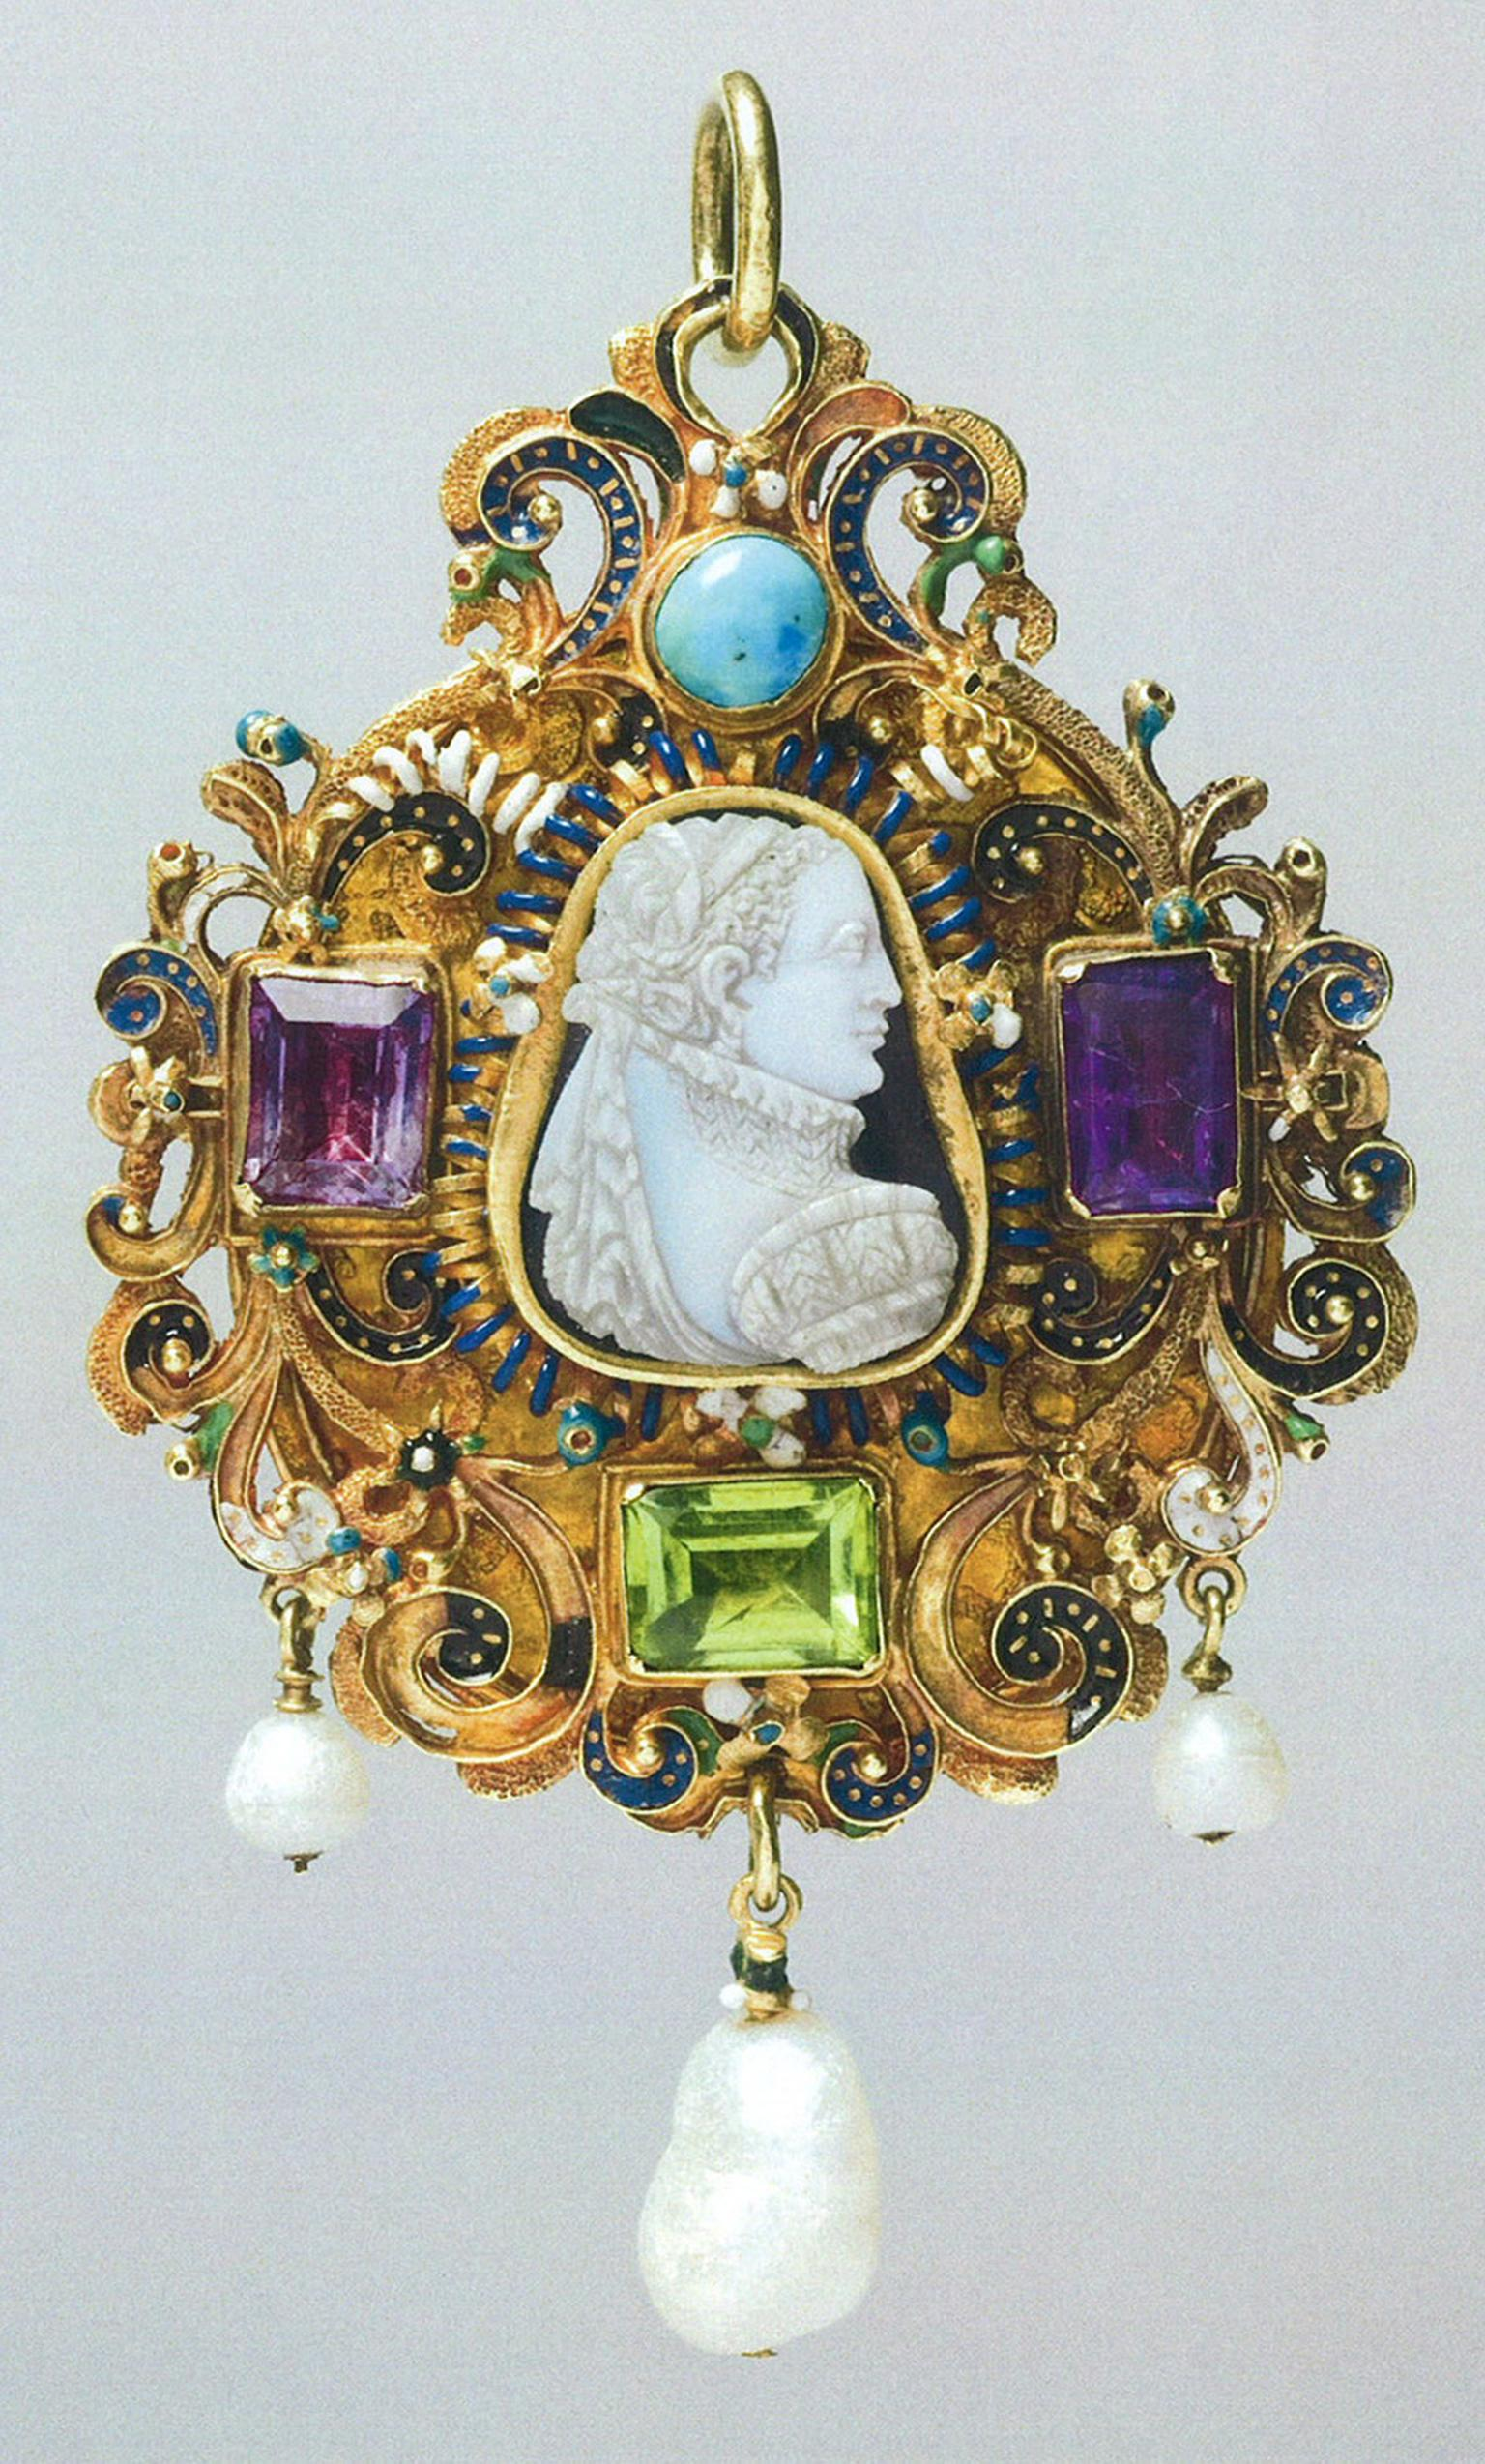 Goldsmiths-Gem-set-gold-pendant-c.jpg